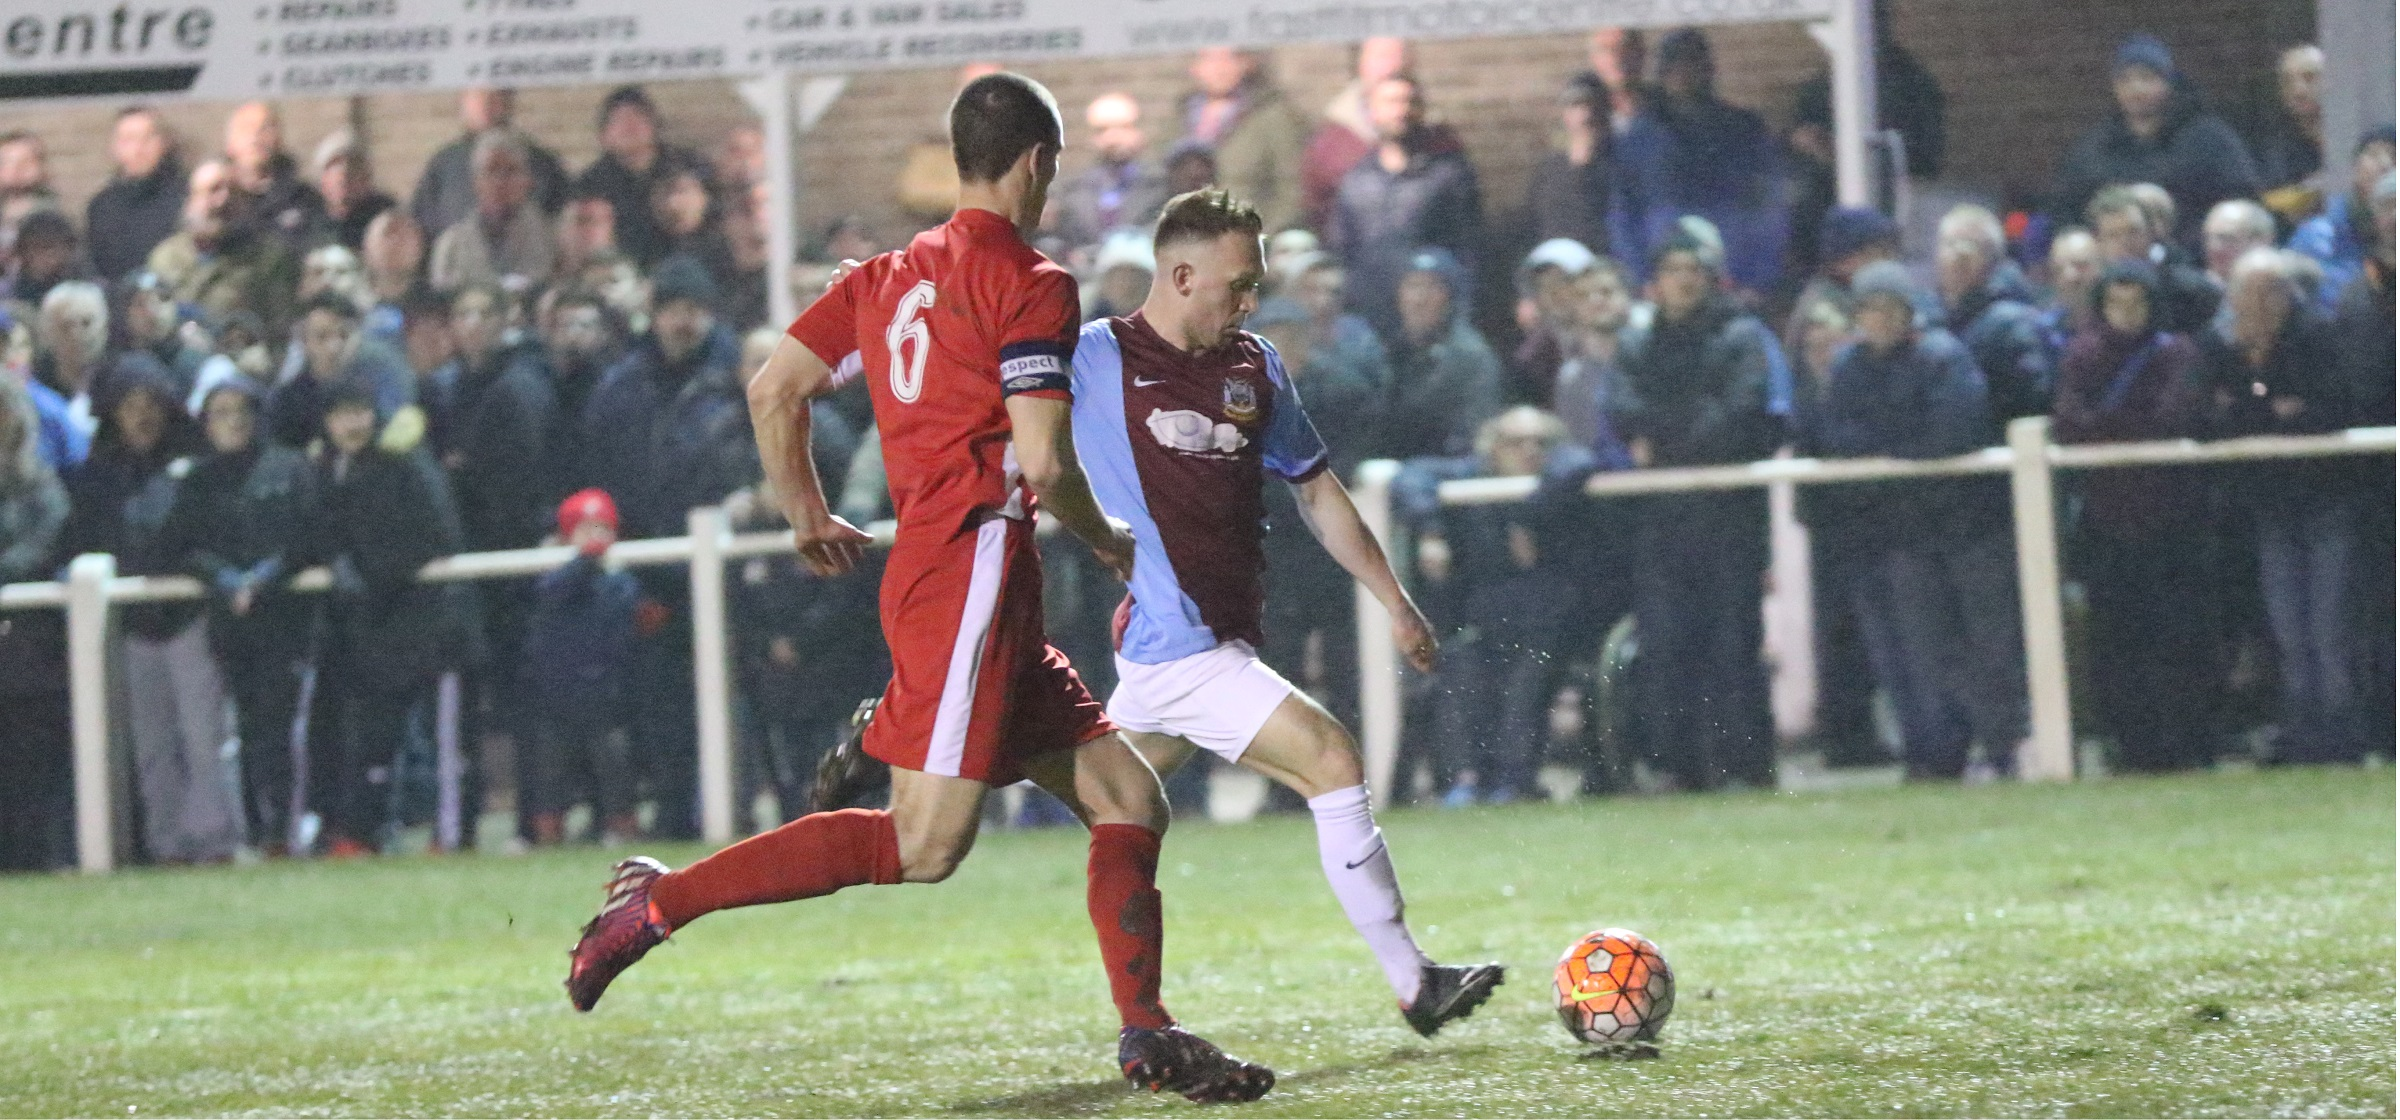 South Shields 0-3 North Shields